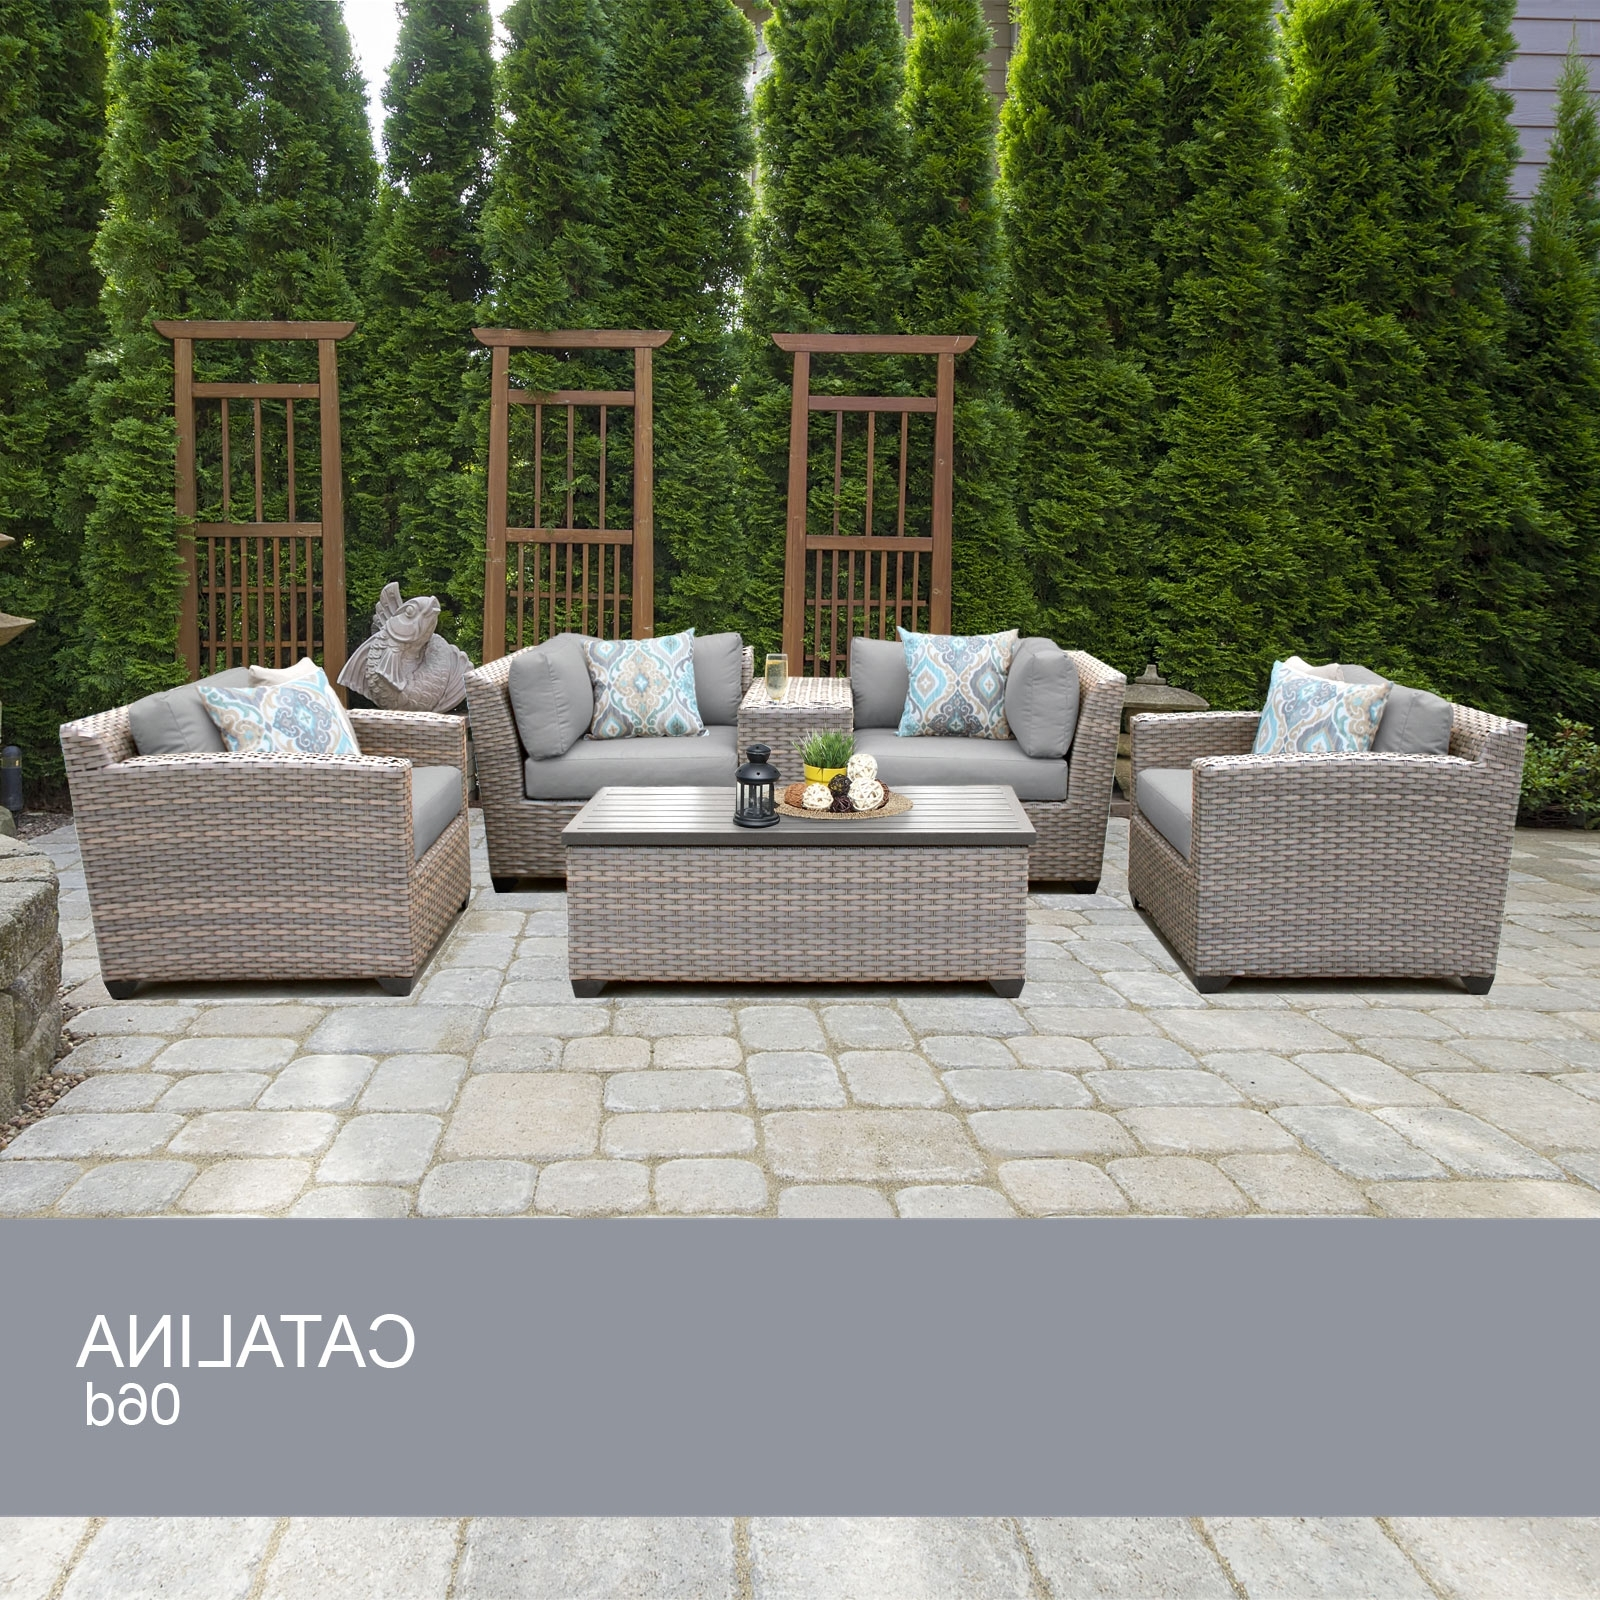 Trendy Ebay Patio Conversation Sets For Resin Wicker Patio Furniture – Airavata (View 15 of 15)